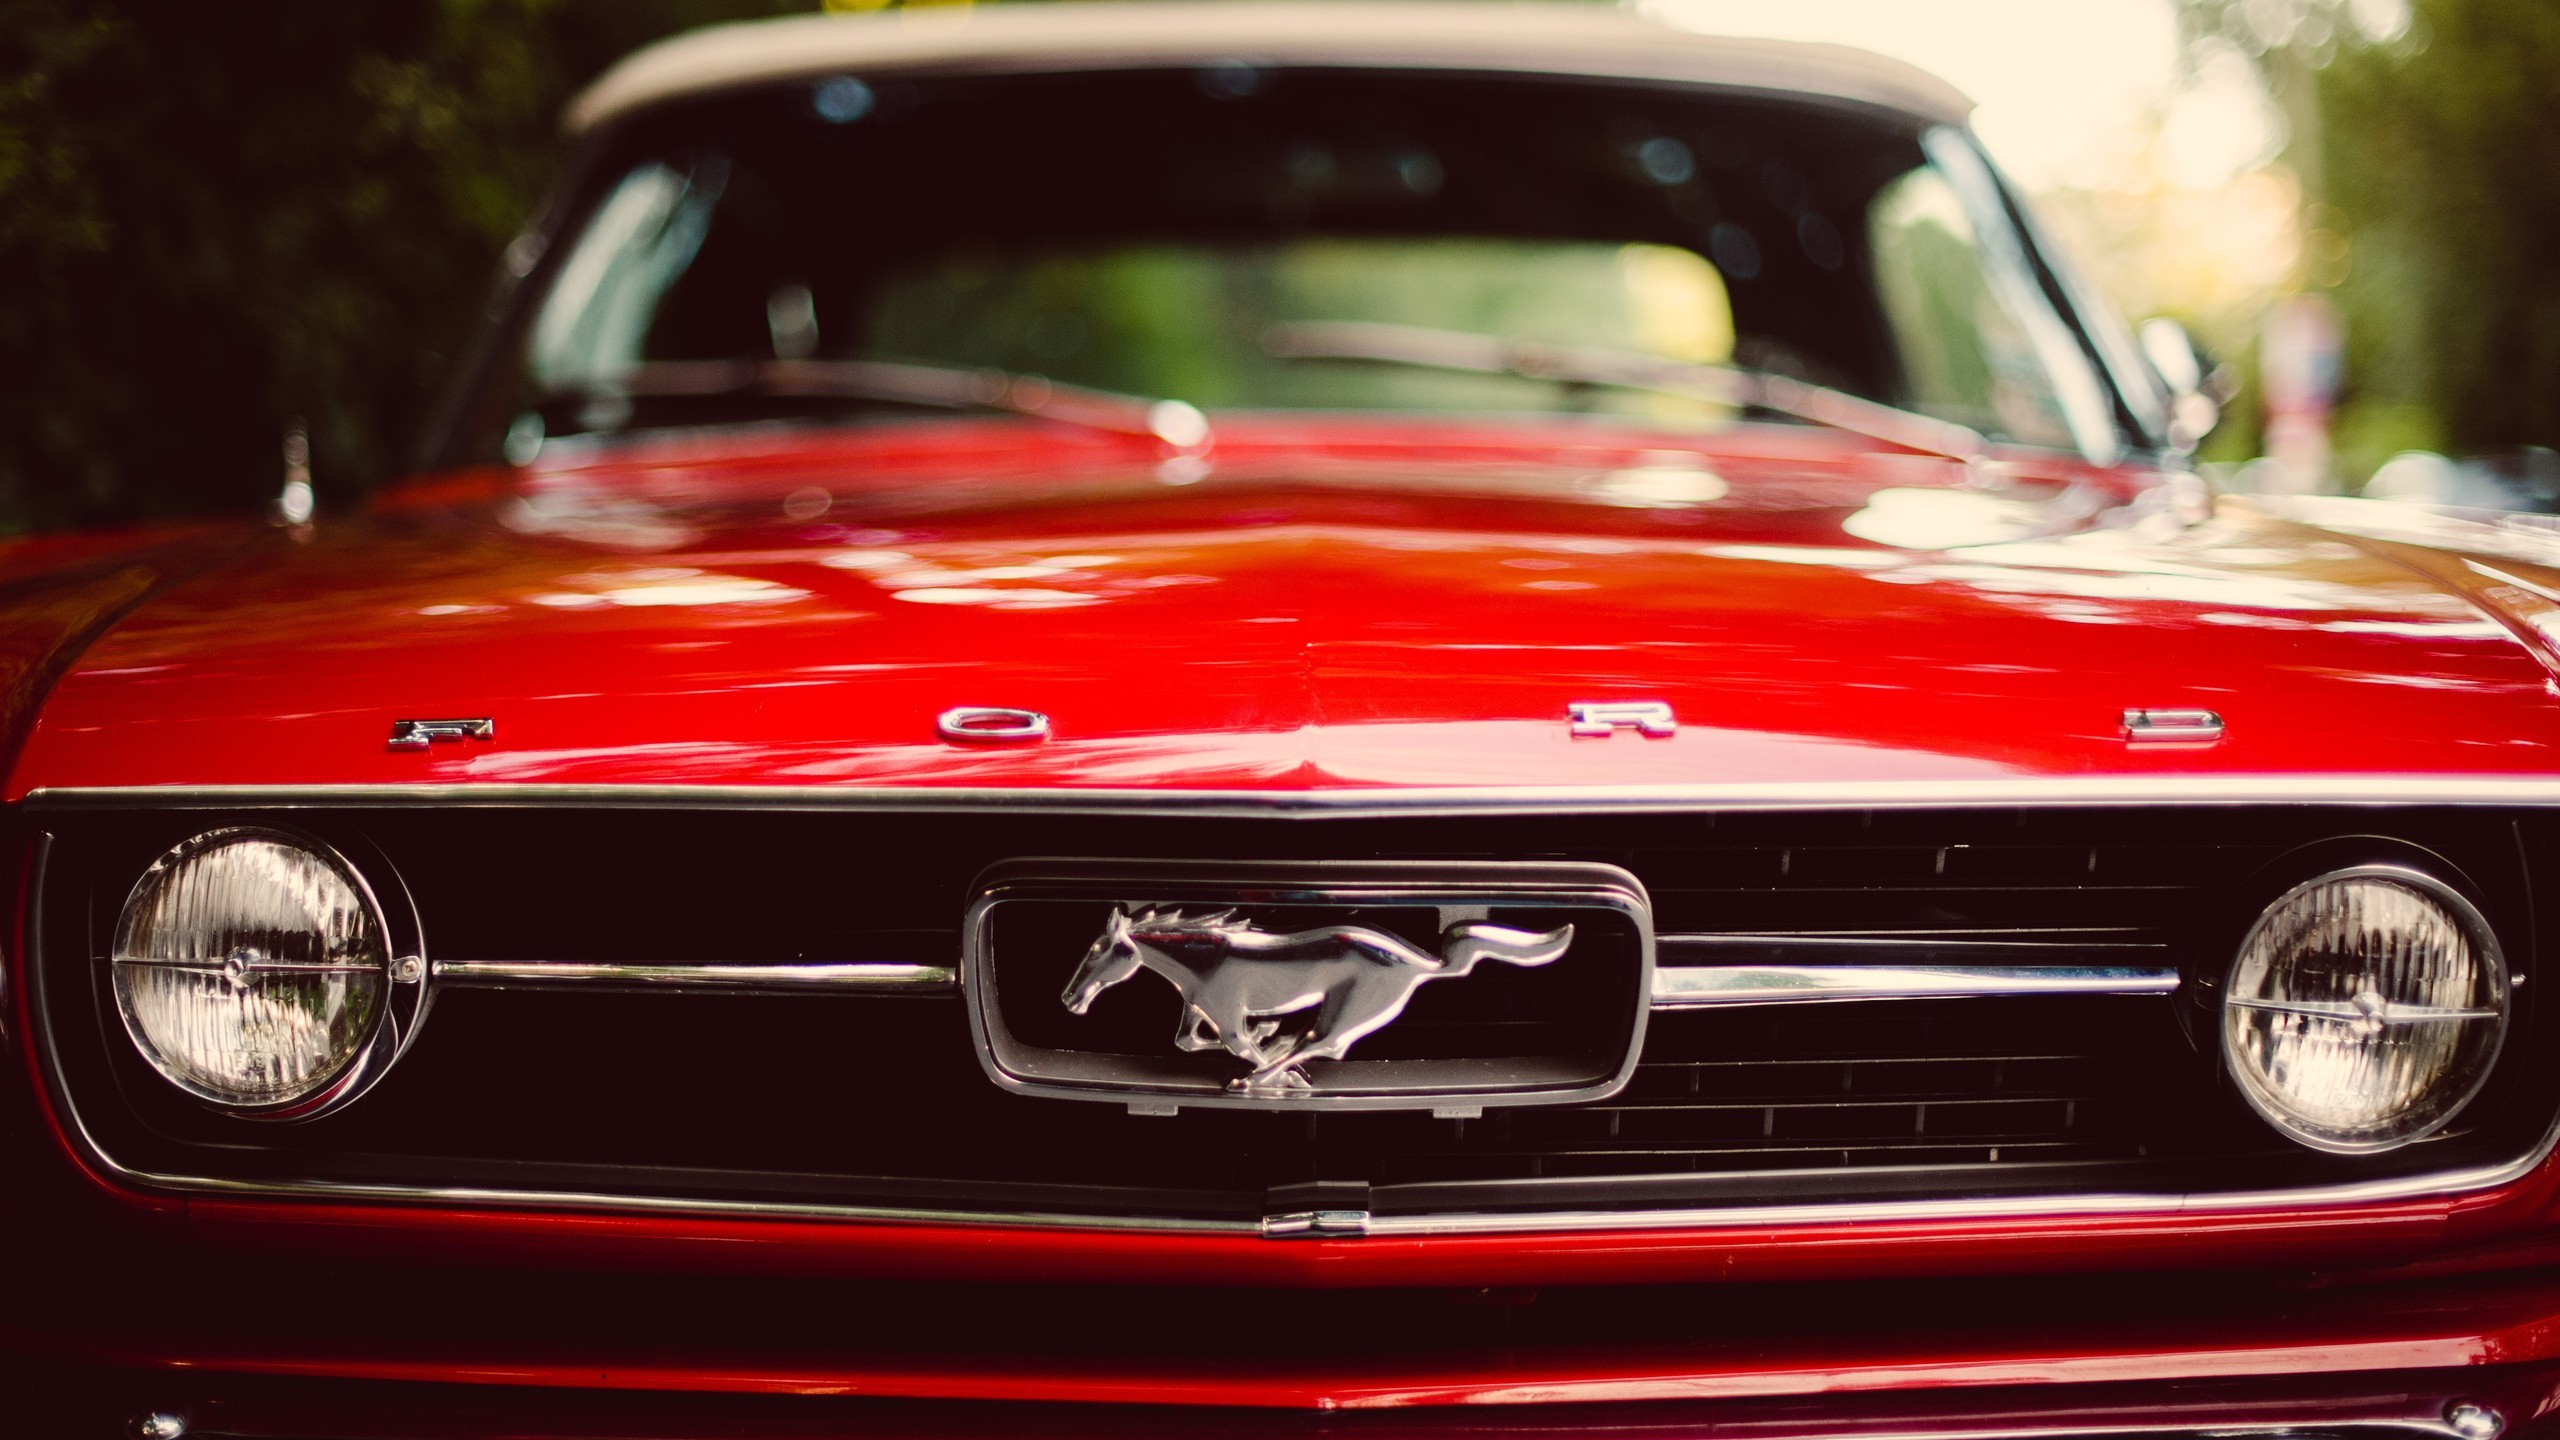 2560x1440 muscle Cars, Ford Mustang, Red, Car Wallpapers HD / Desktop and Mobile  Backgrounds